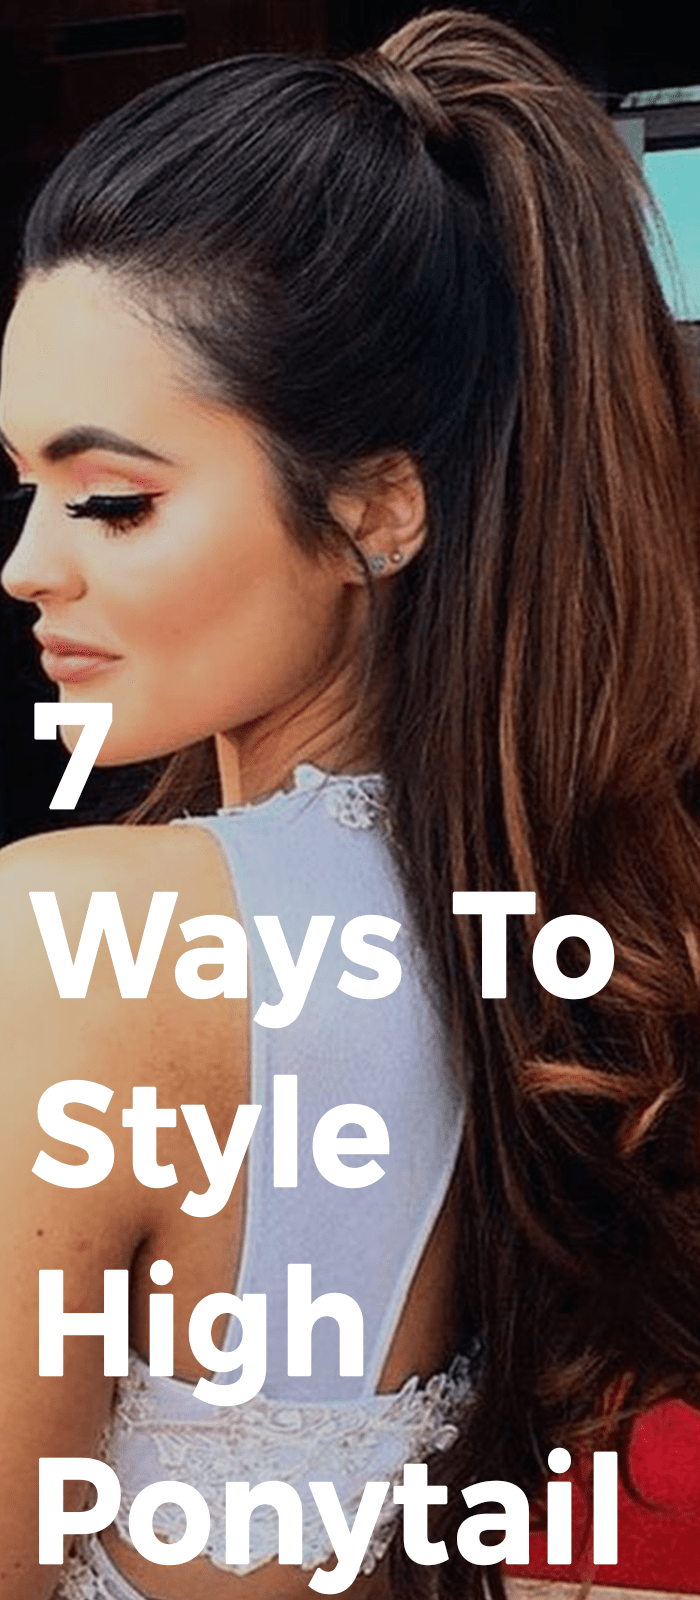 10 Quick Steps How To Make High Ponytail Hairstyle Tail Hairstyle Ponytail Hairstyles High Ponytail Hairstyles